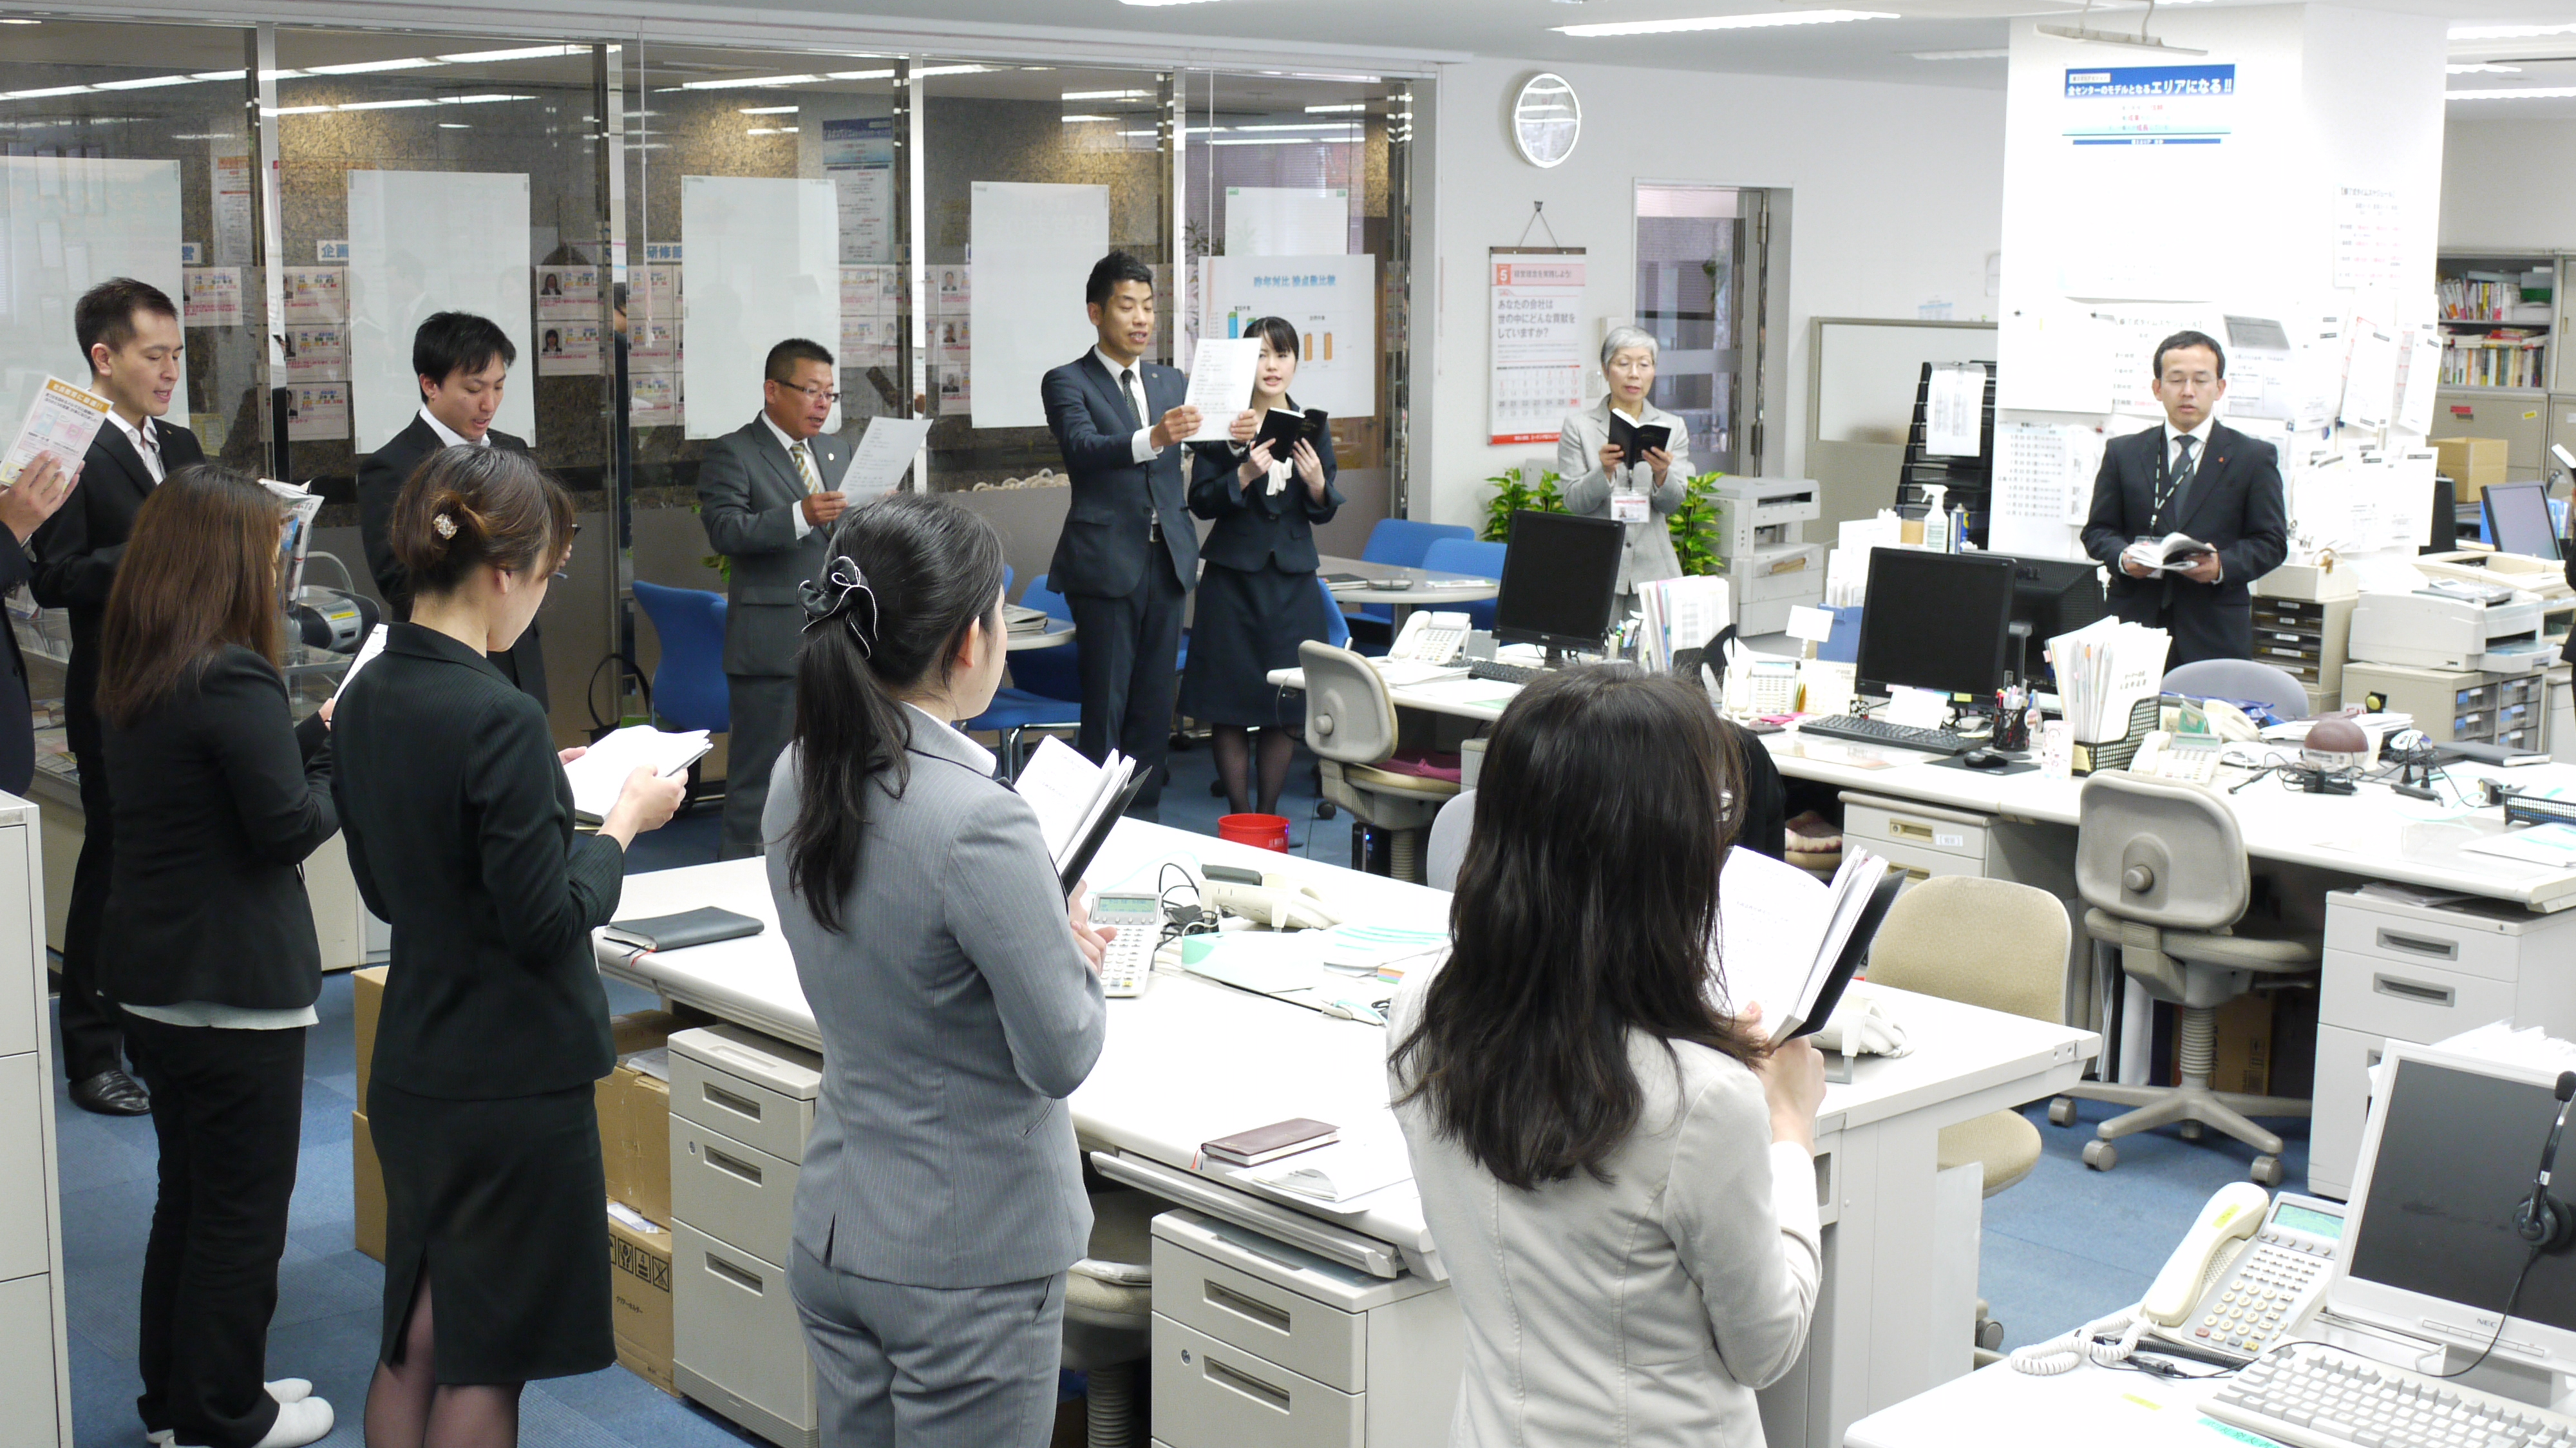 The Morning Greetings In Japanese Work Place